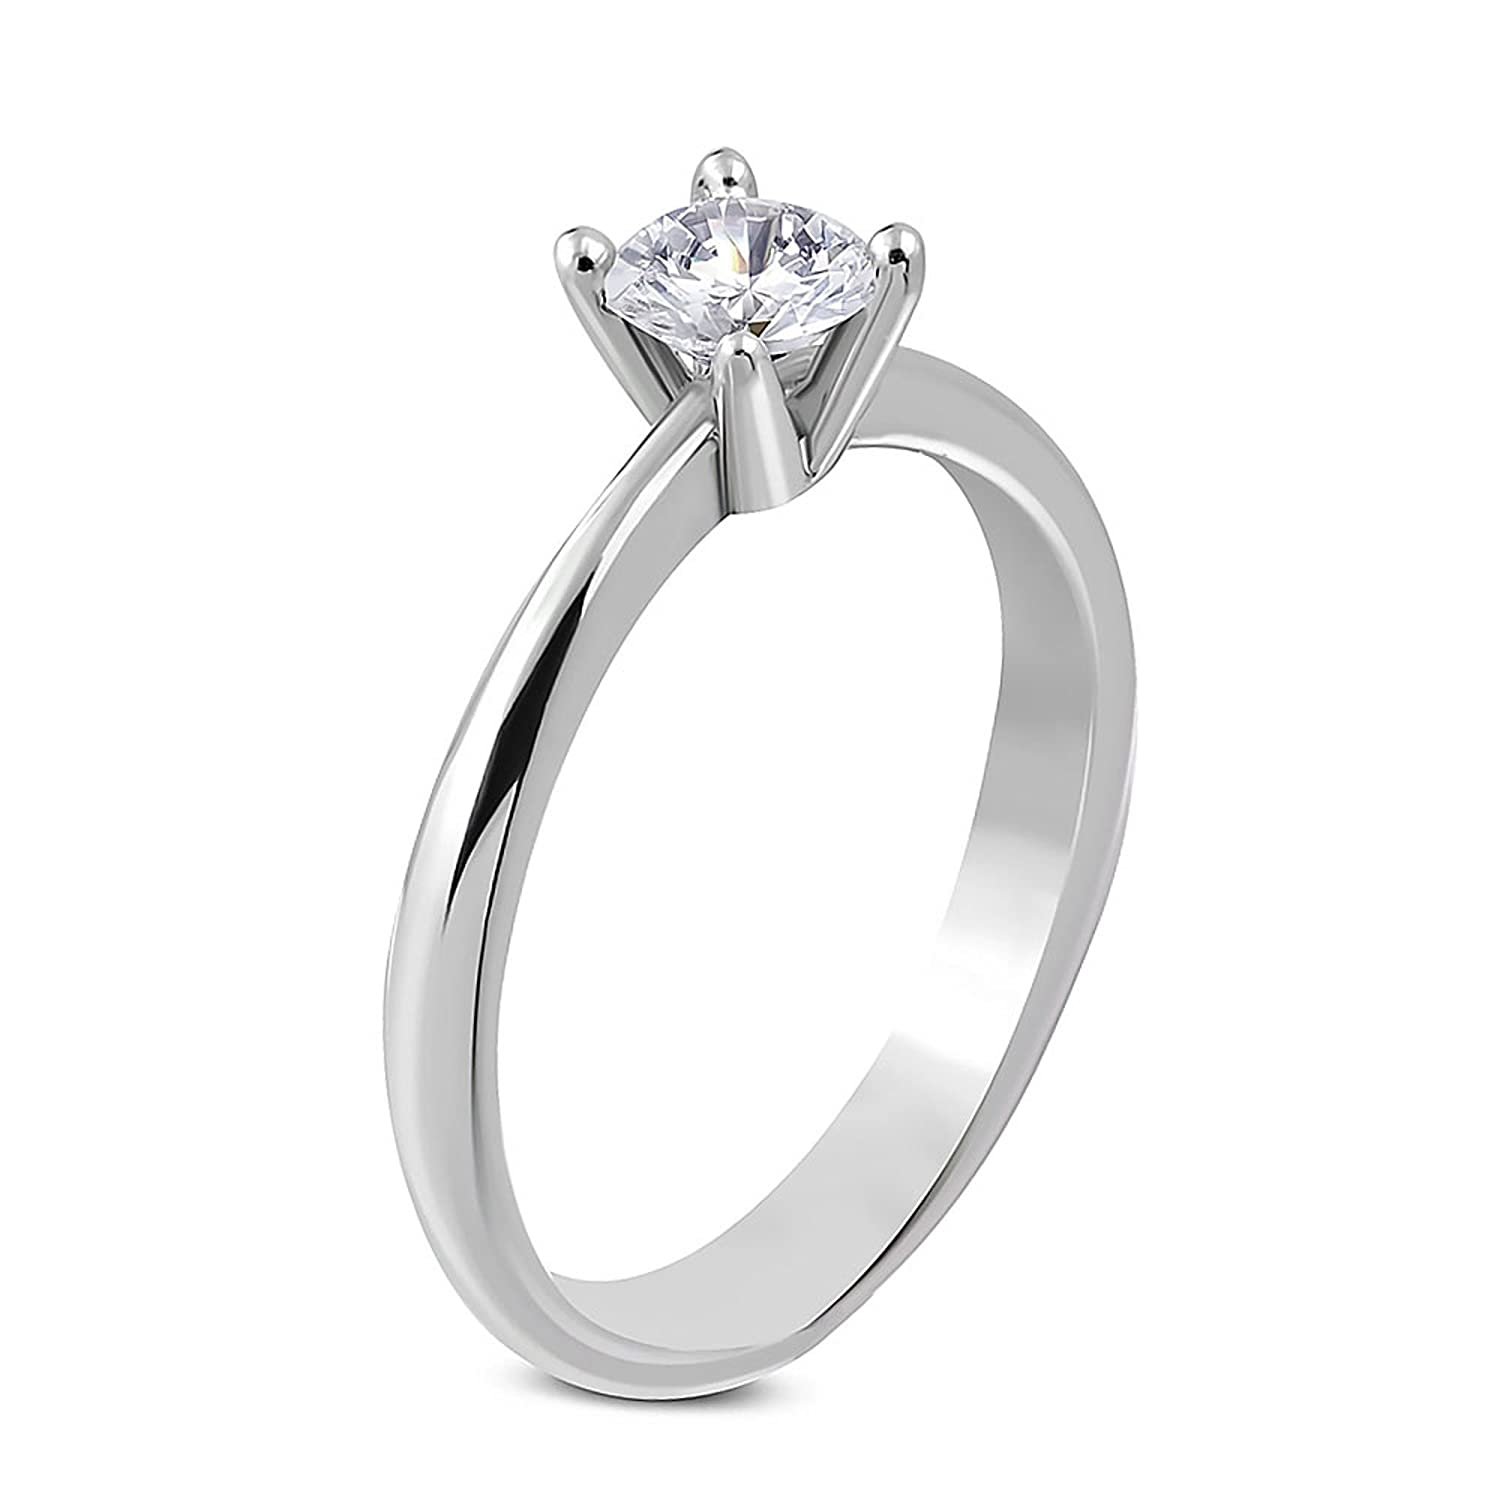 Pure 316-5.5mm | Surgical Stainless Steel 316L Prong-Set Round Solitaire Engagement Ring w/Clear CZ Leviev Ltd. JK-ZRC210-P